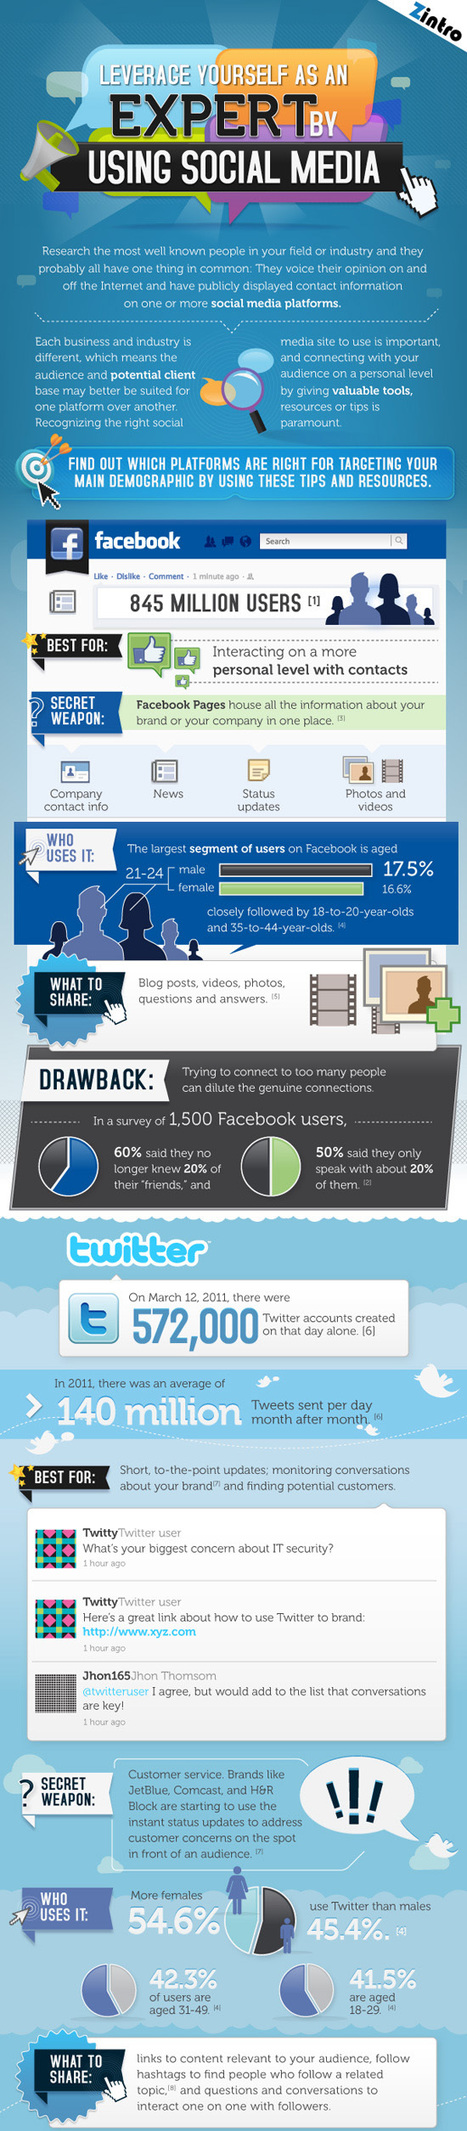 Leverage Yourself As An Expert By Using Social Media | Infographic | SOCIAL MEDIA MARKETING TIPS | Scoop.it